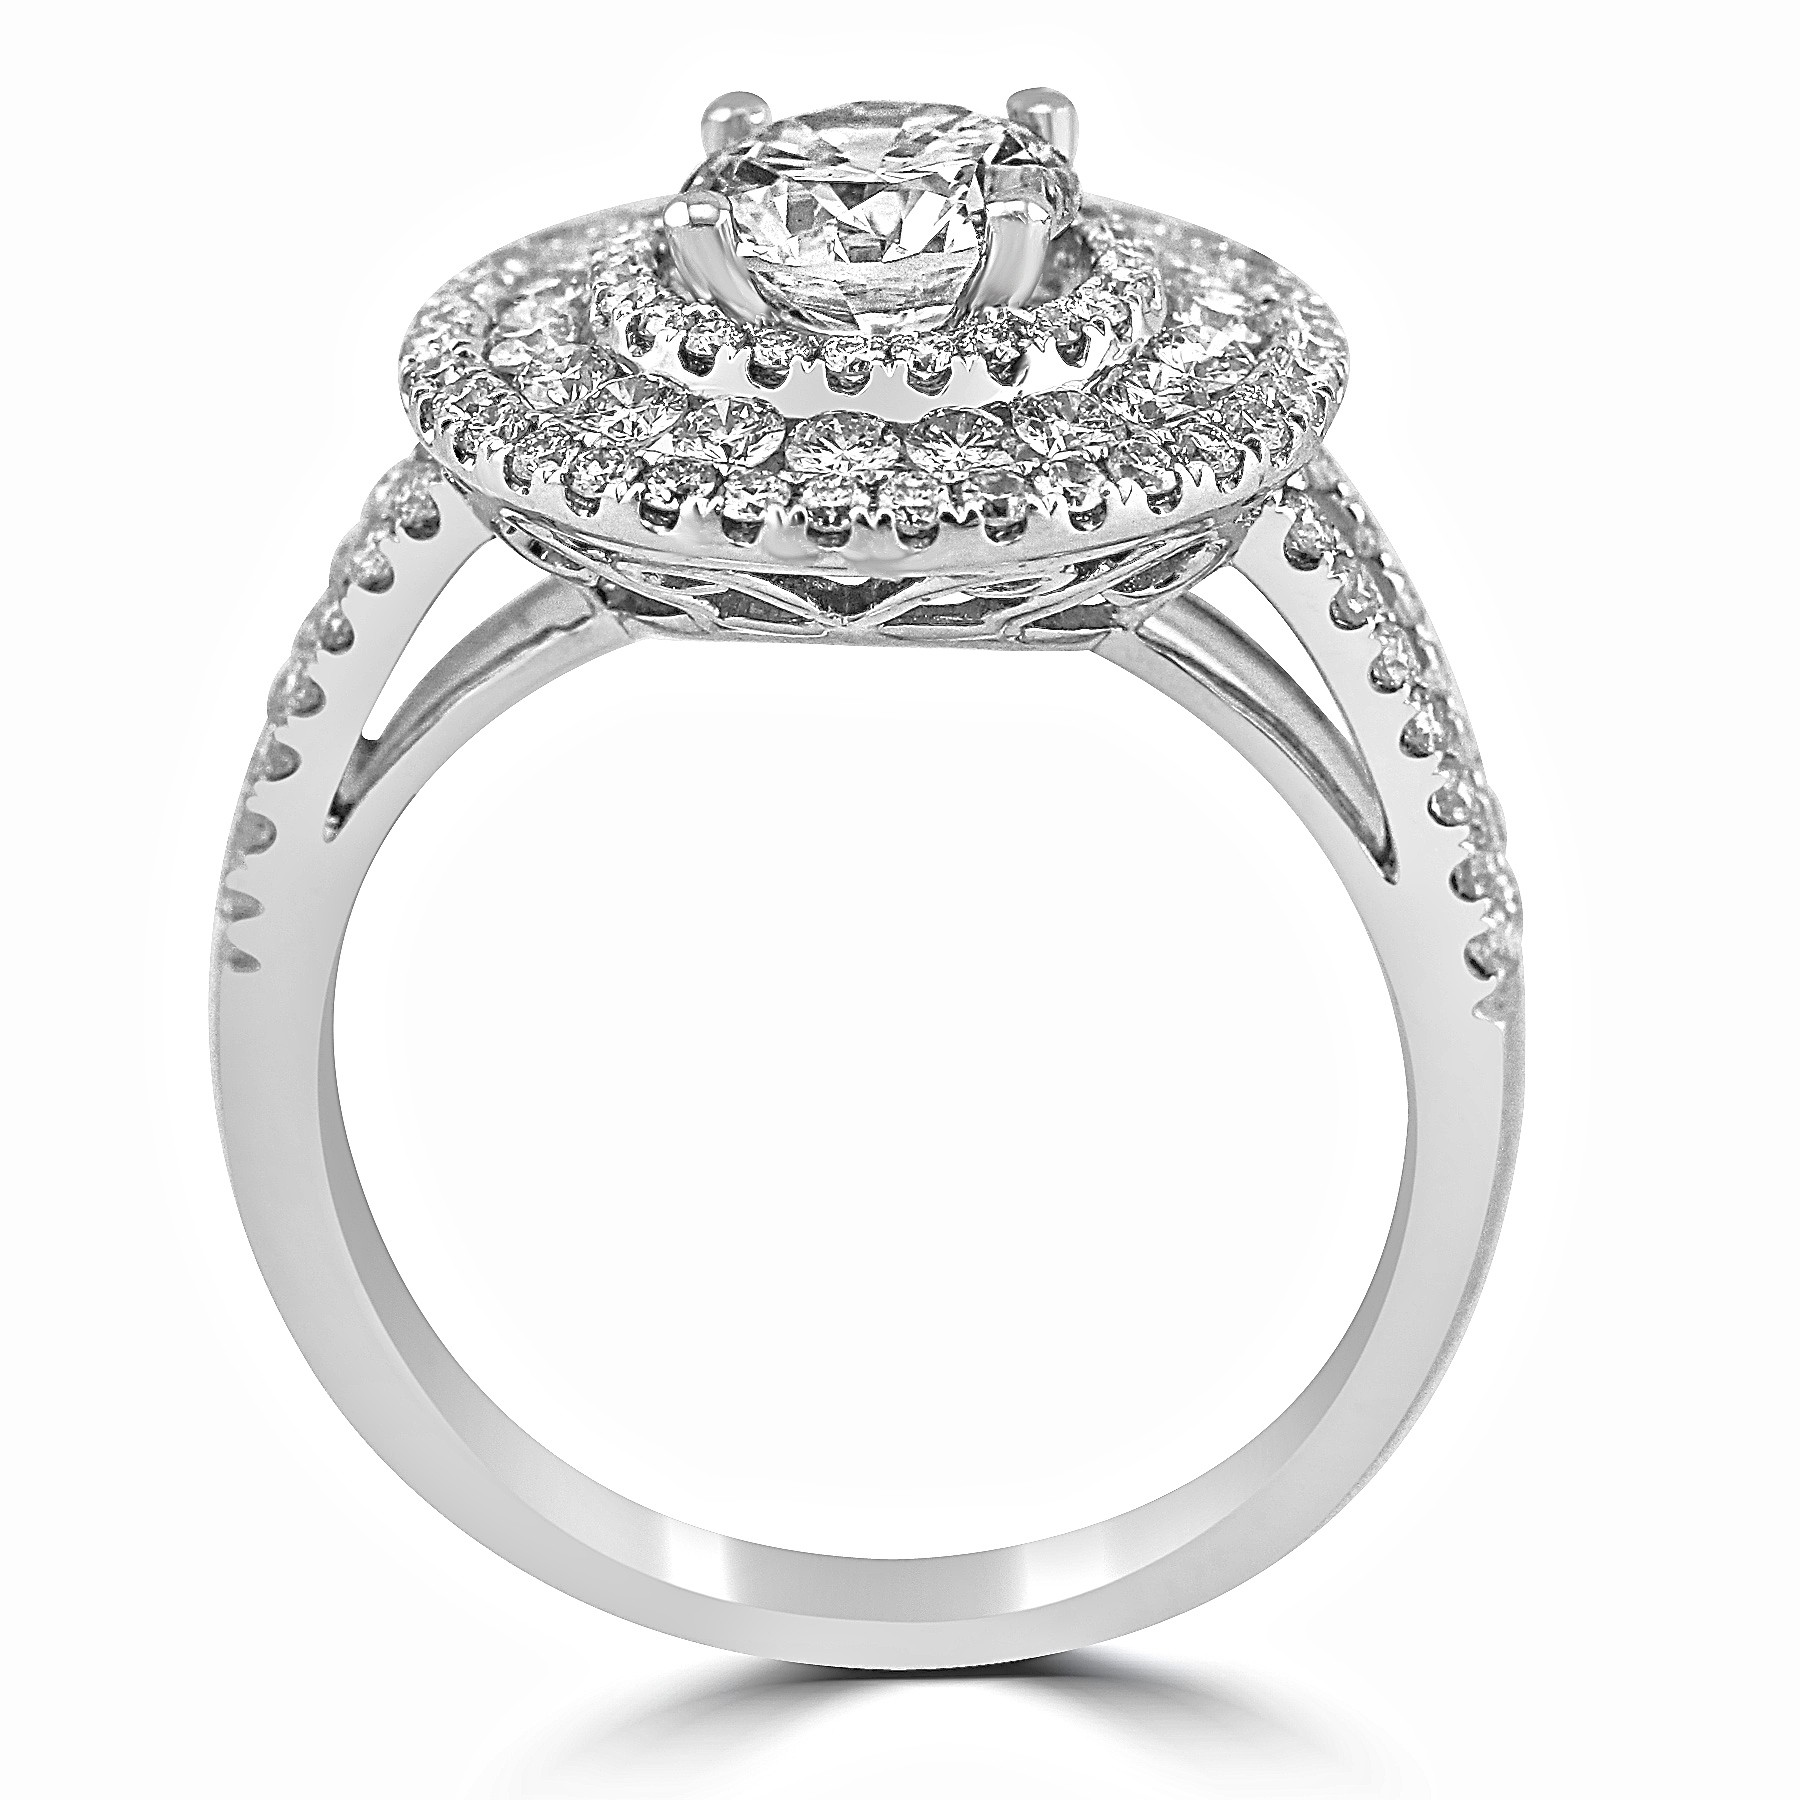 minimal pav setting rg vertical collections vow oval engagement rose the wedding vrai band oro pave ring gold rings diamond